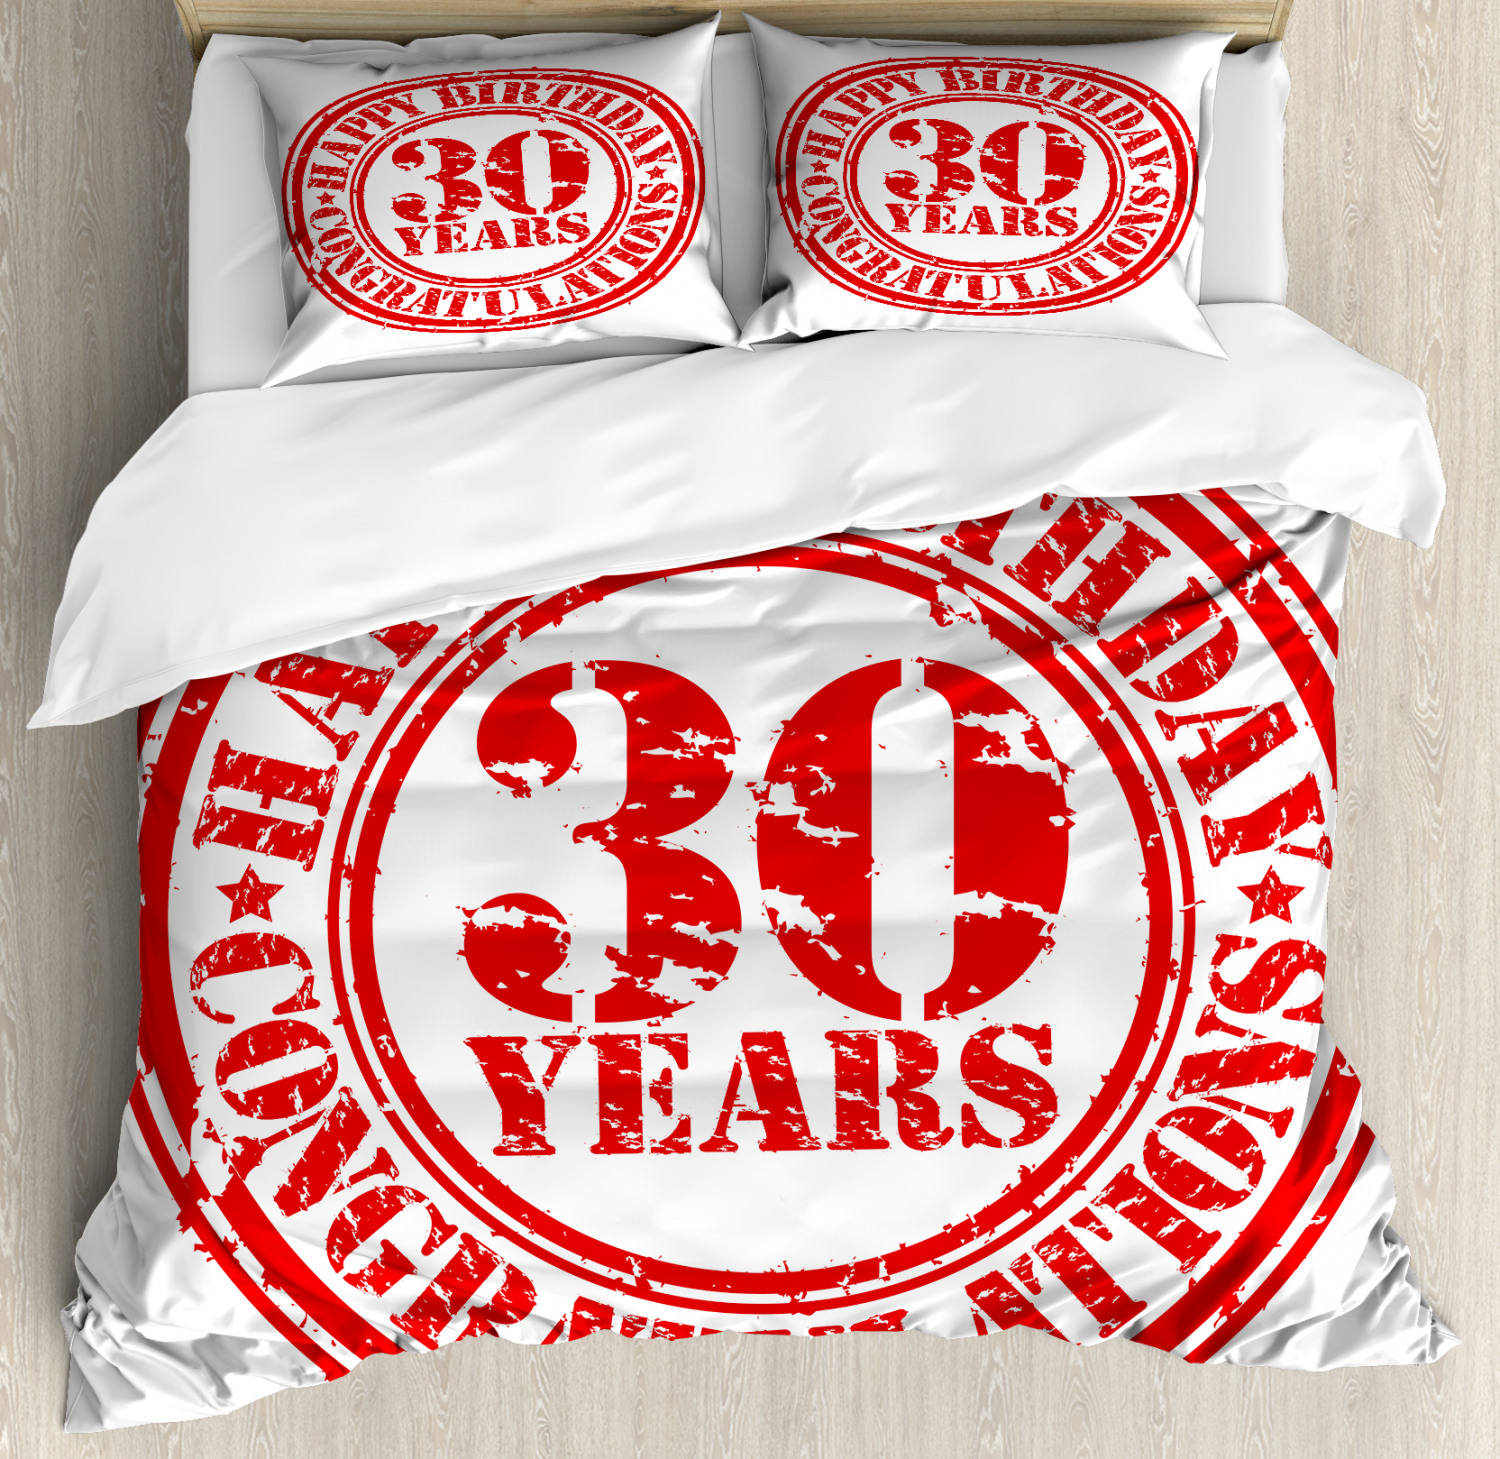 Retro Duvet Cover Set with Pillow Shams Grunge Birthday Stamp Print